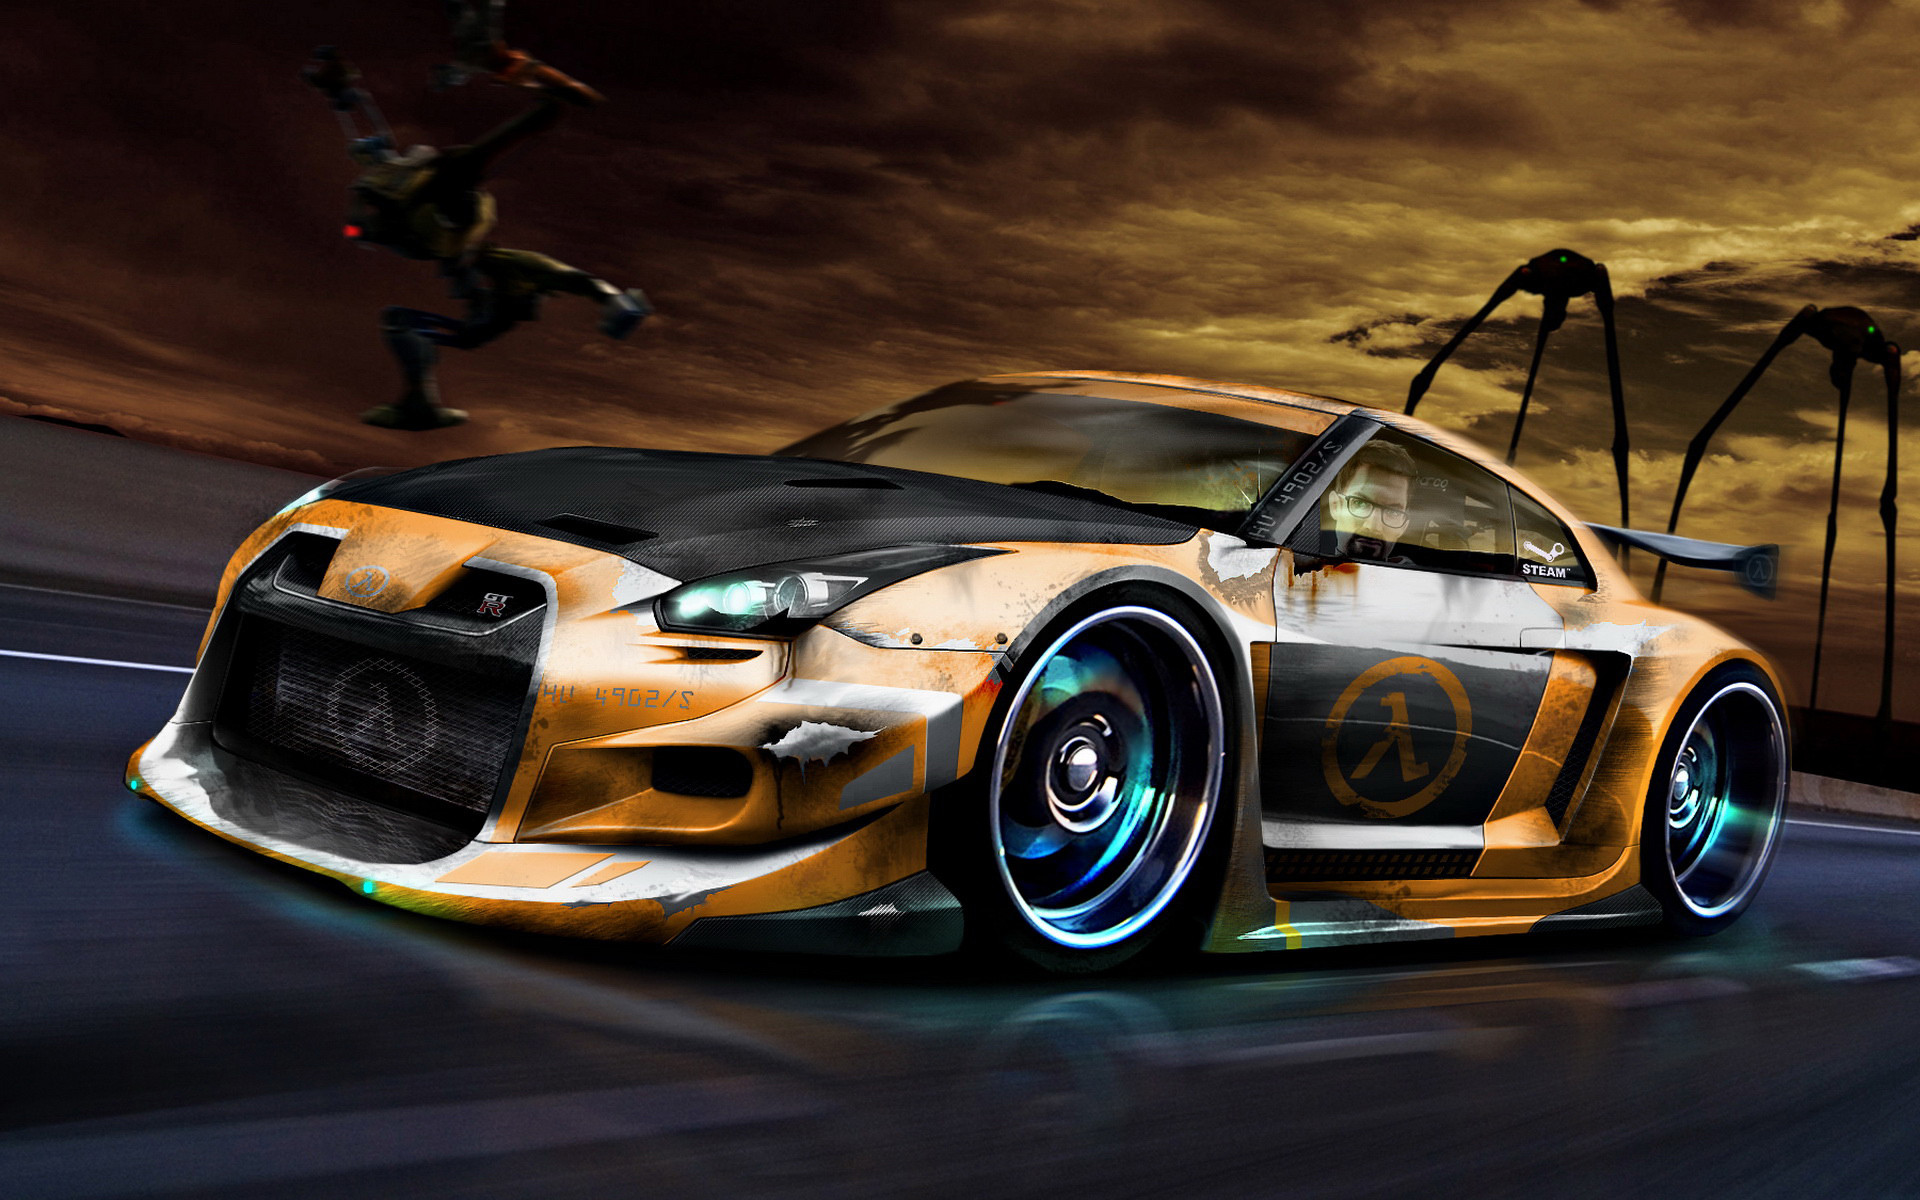 Cool Sport Cars Wallpaper